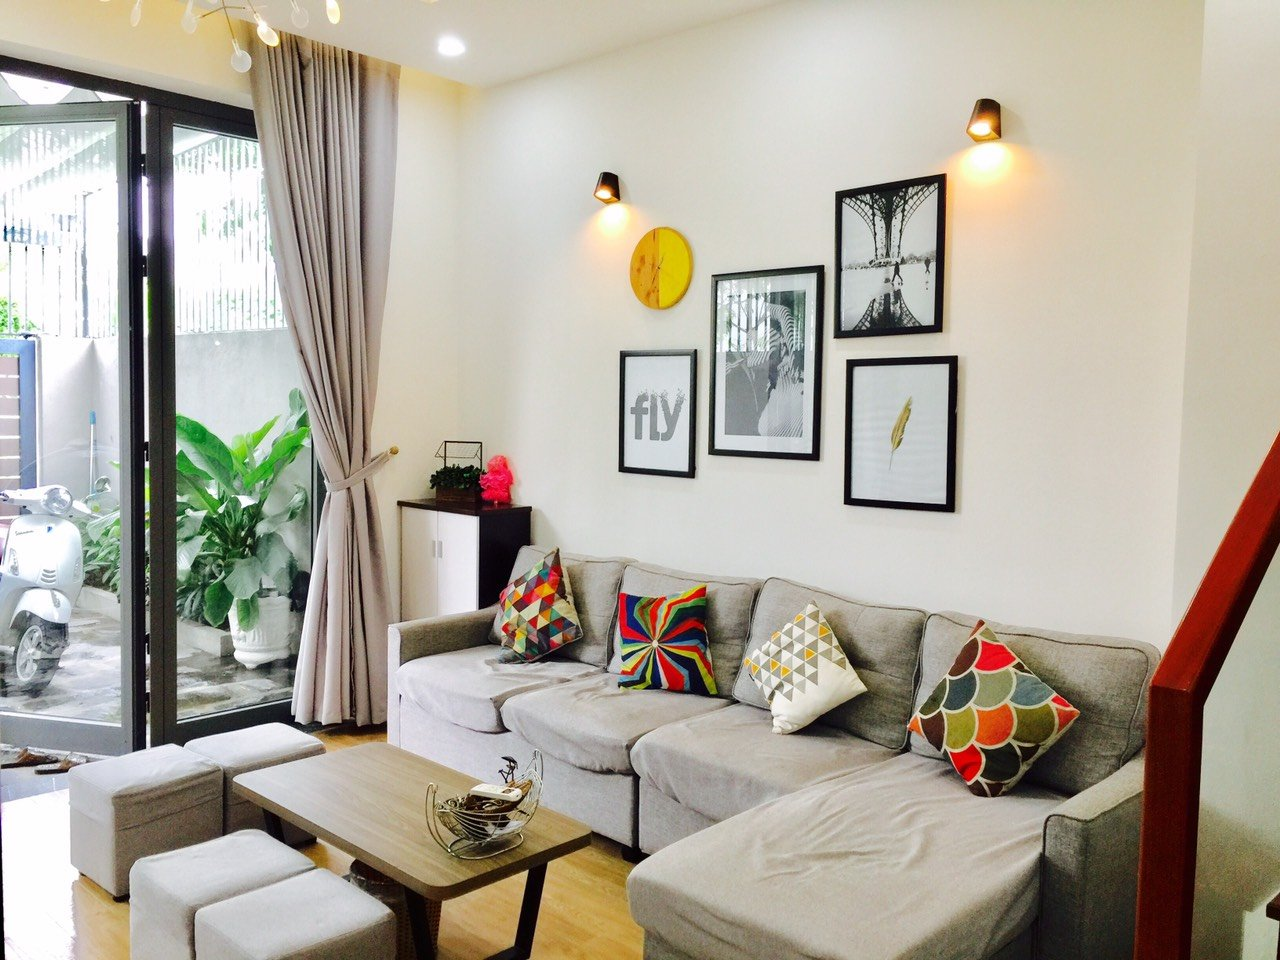 3 Bedrooms House in Da Nang – Quiet area of Son Tra